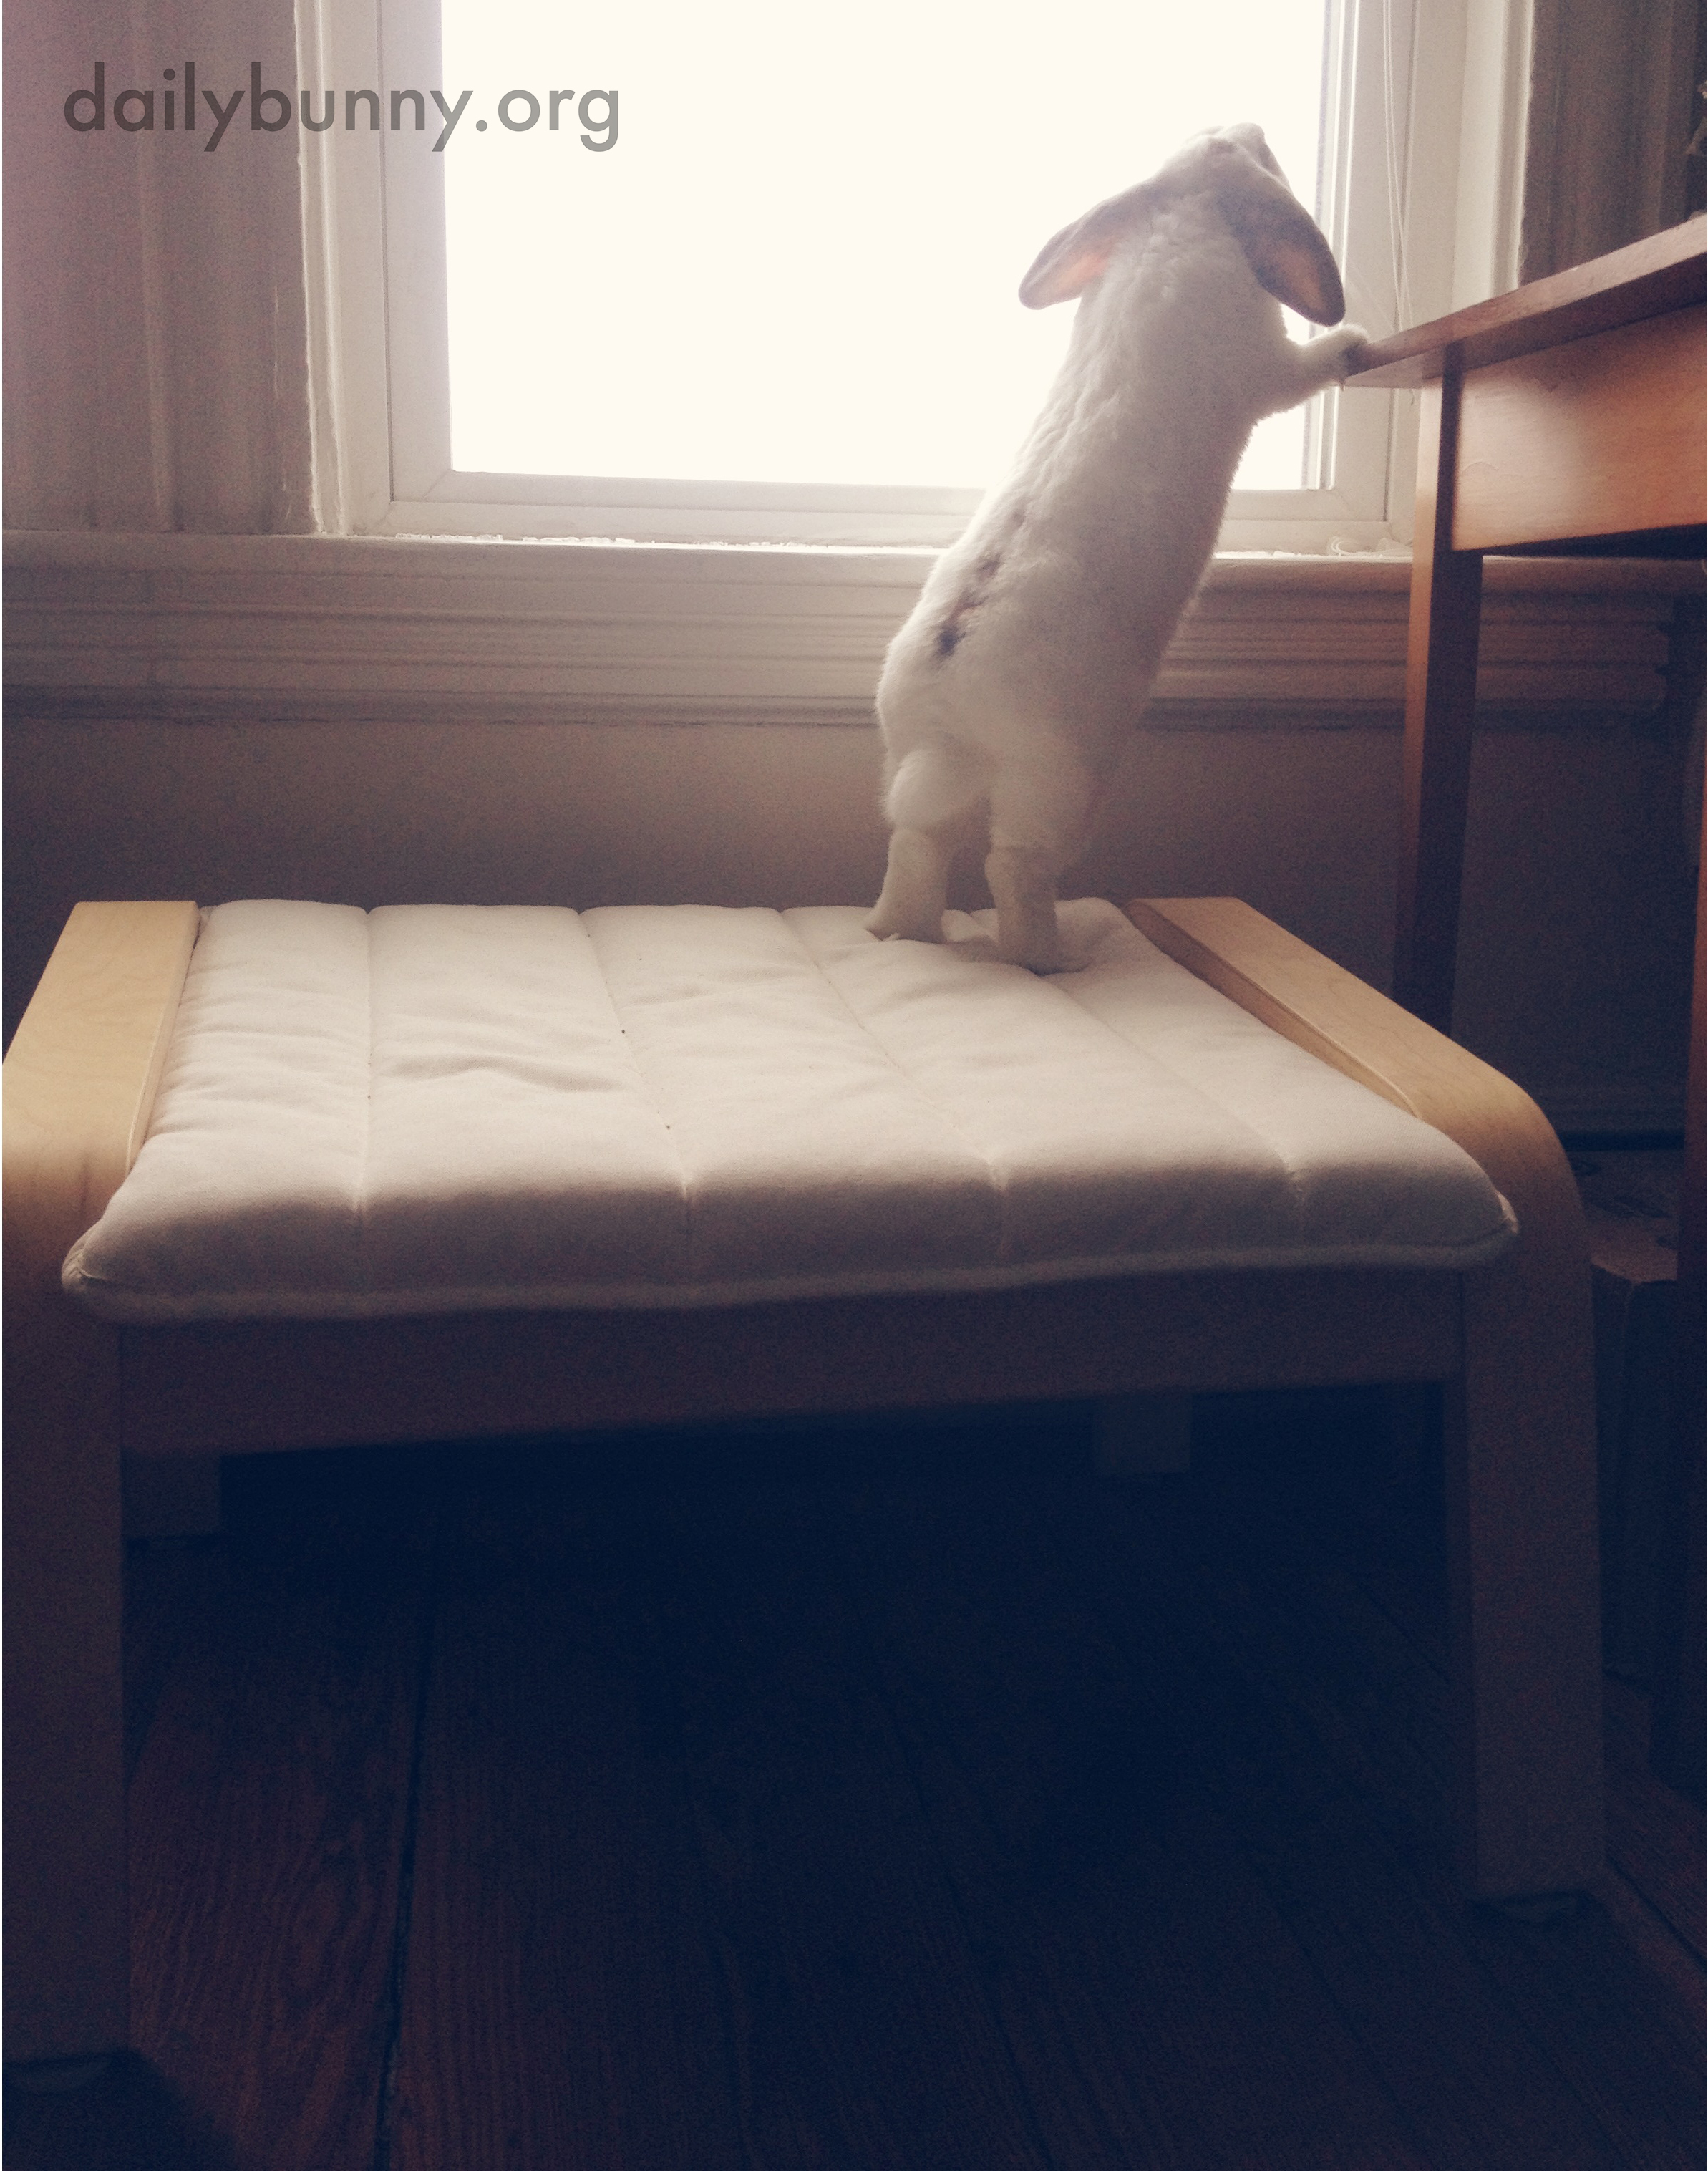 Bunny Is Curious About What's on the Other Side of the Window 2